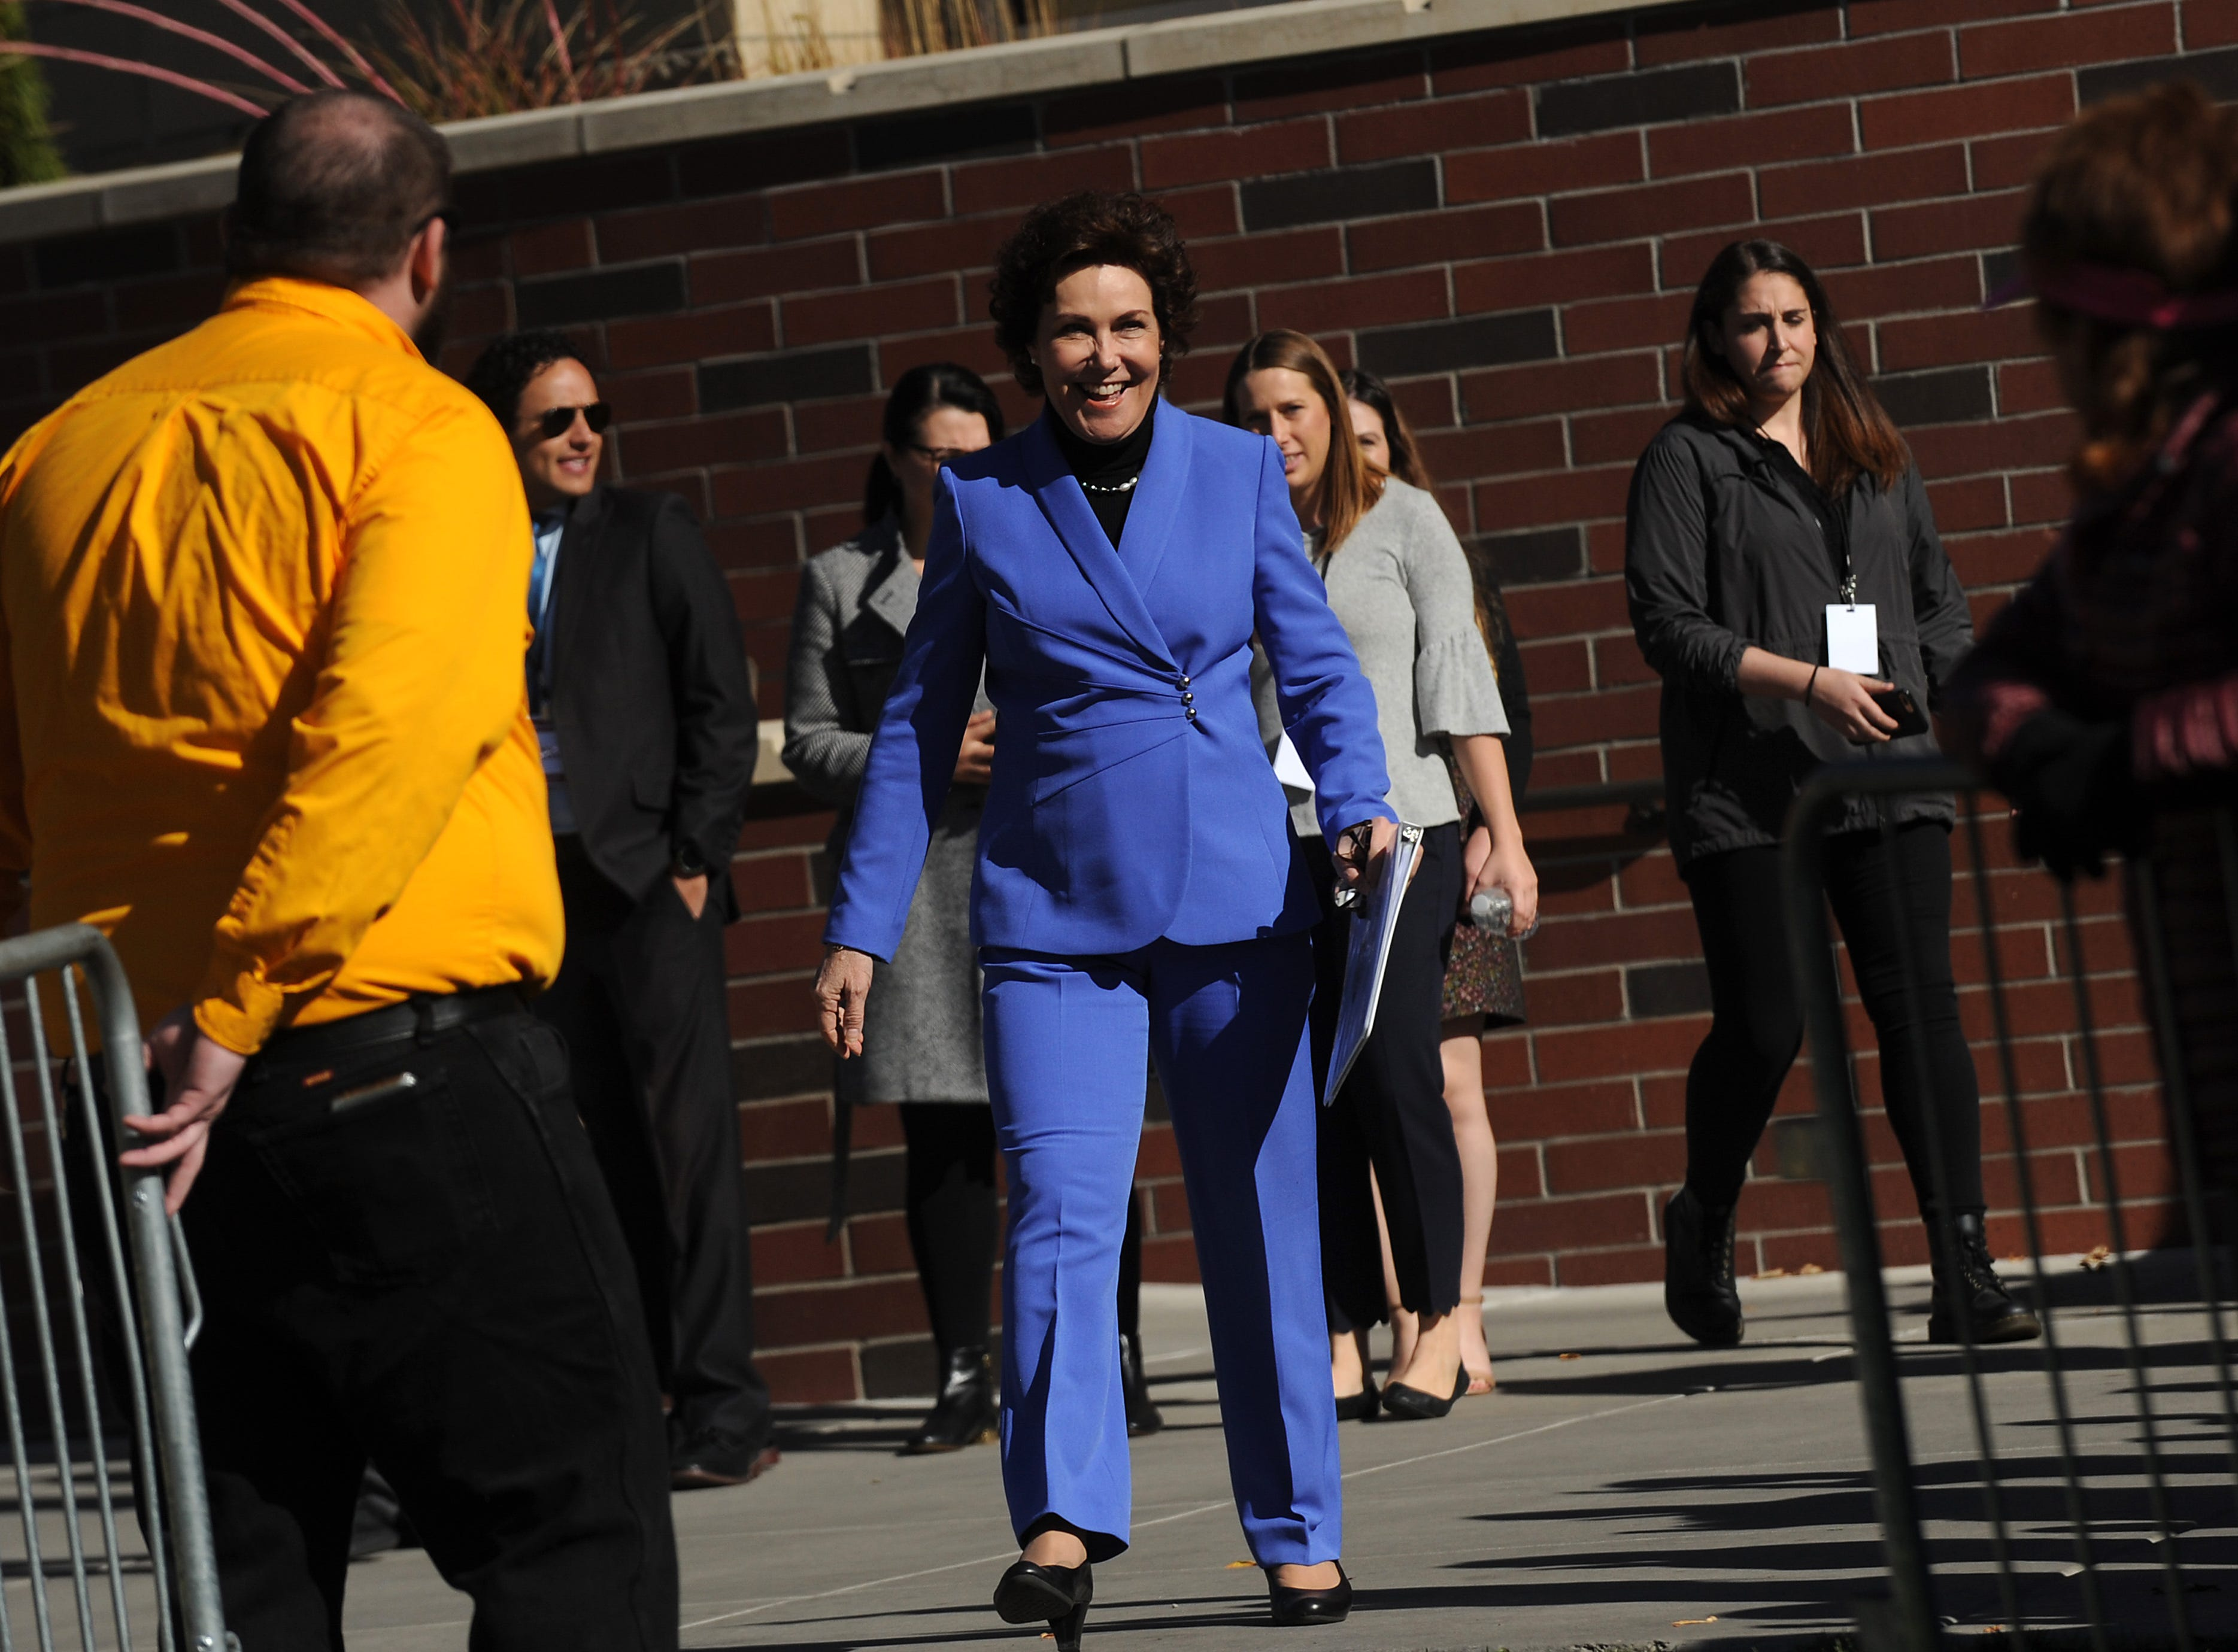 U.S. Rep. Jacky Rosen, D-Nev., who is challenging Dean Heller for the U.S. Senate, heads towards the stage to speak on the University of Nevada, Reno campus on Oct. 25, 2018.